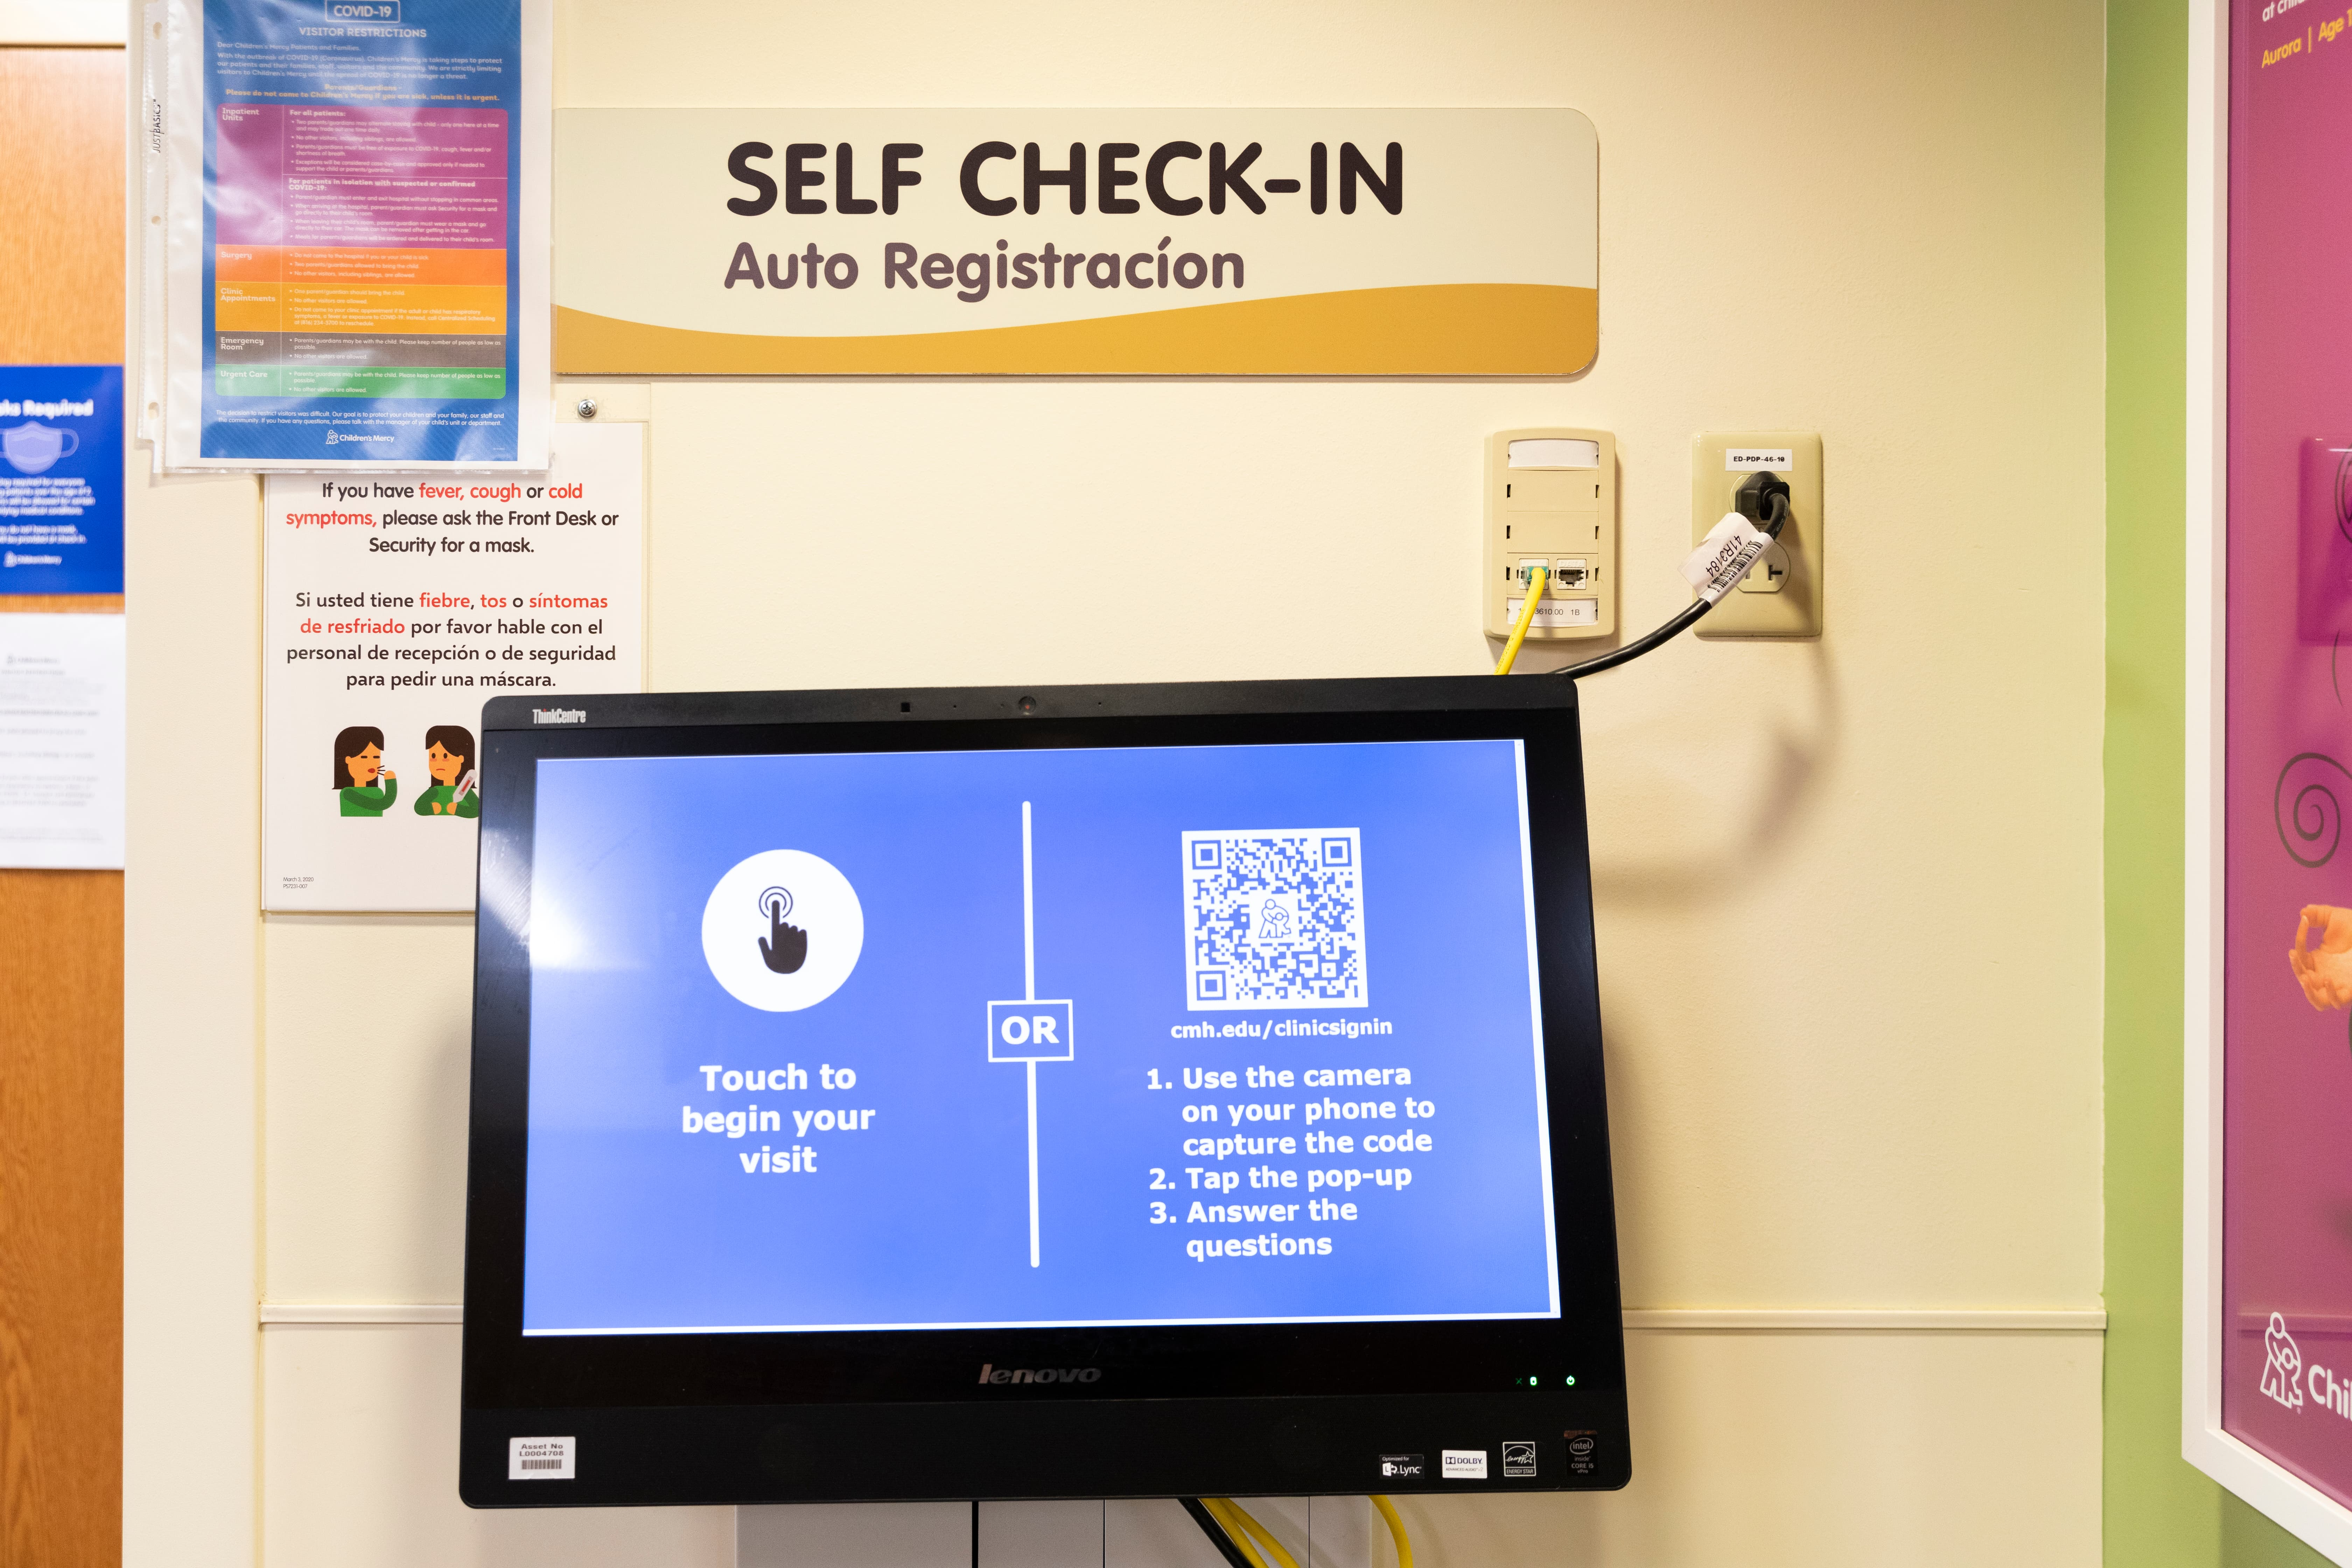 A self check-in station allows families to check in via touchscreen.